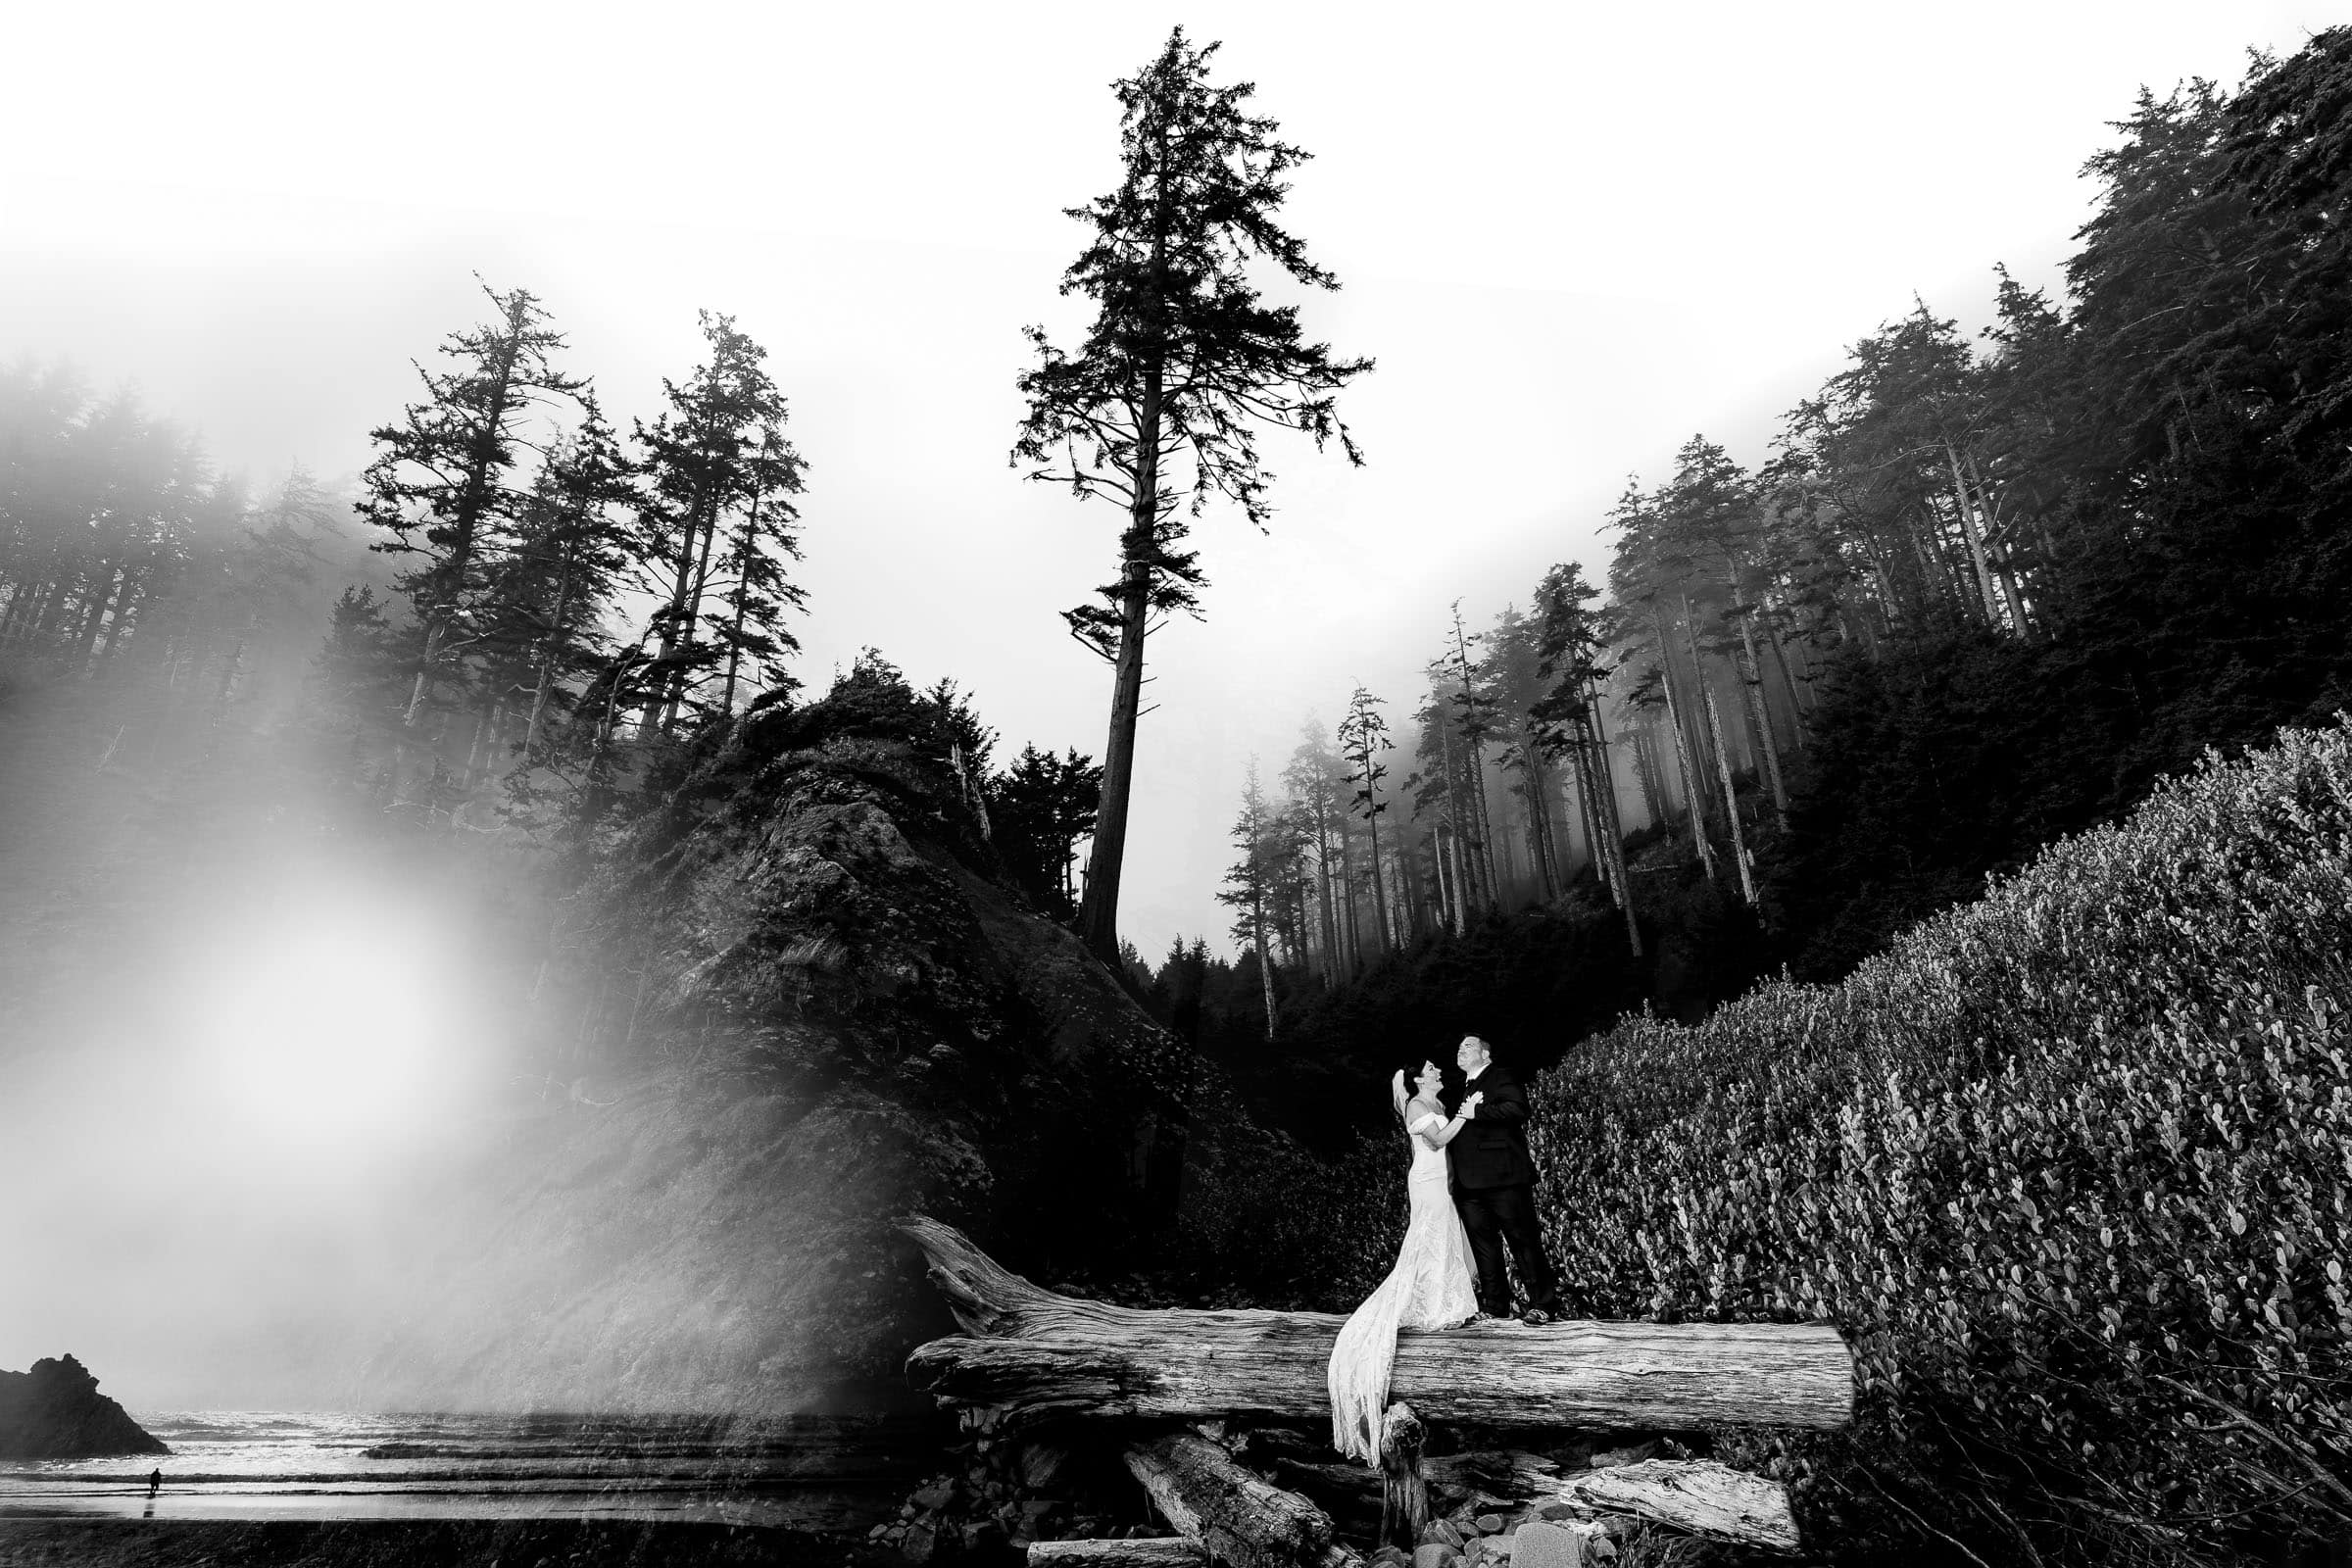 Cannon beach elopement with bride and groom portrait on a large log with fog and trees behind them.